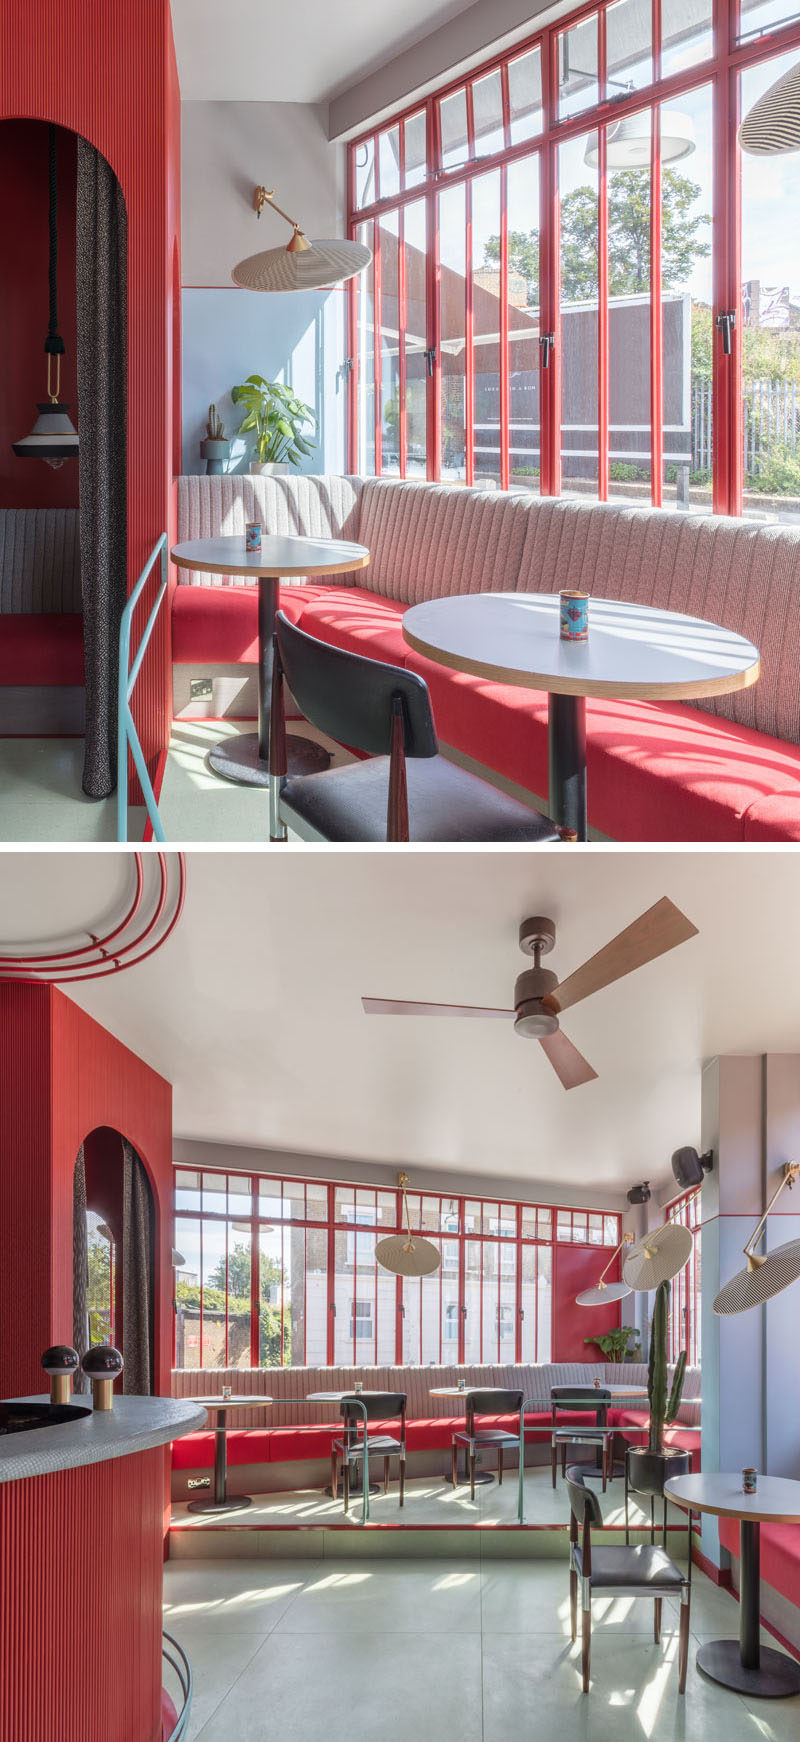 In this restaurant, built-in banquette seating lines the wall along the windows, while bold pops of color complement the red window frames. #BanquetteSeating #Windows #RestaurantDesign